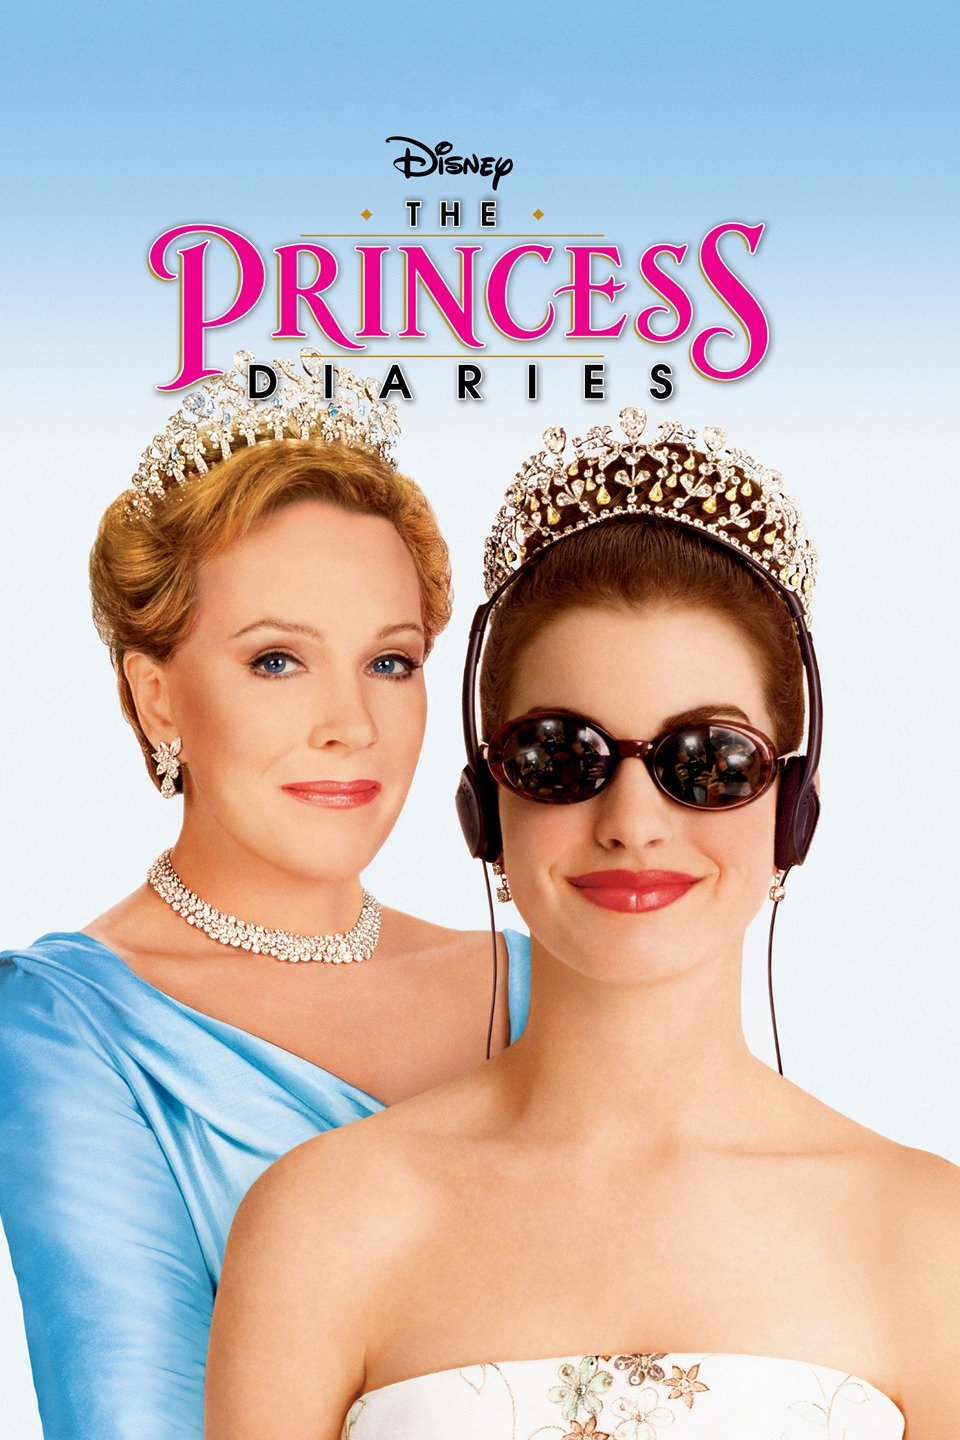 The Princess Diaries 2001 BluRay 720p 1GB [Hindi DD 2.0 – English DD 2.0] ESubs MKV